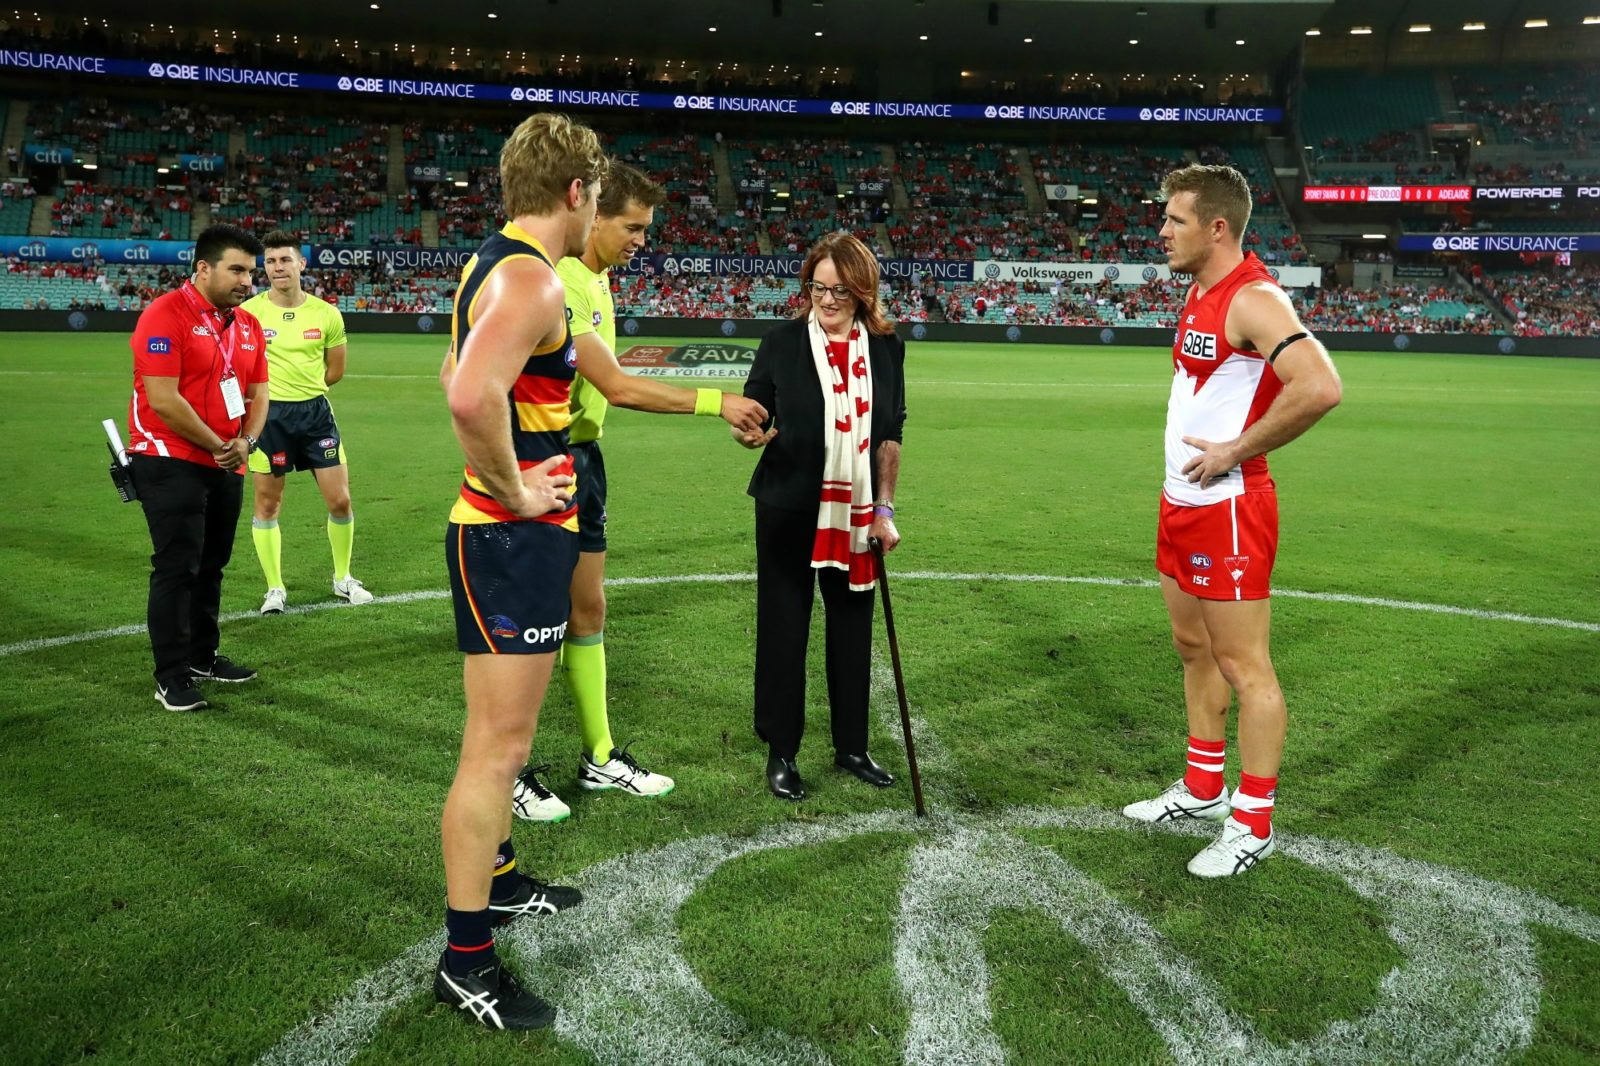 Cynthia Banham appeared to struggle with the coin toss. Source: Getty.